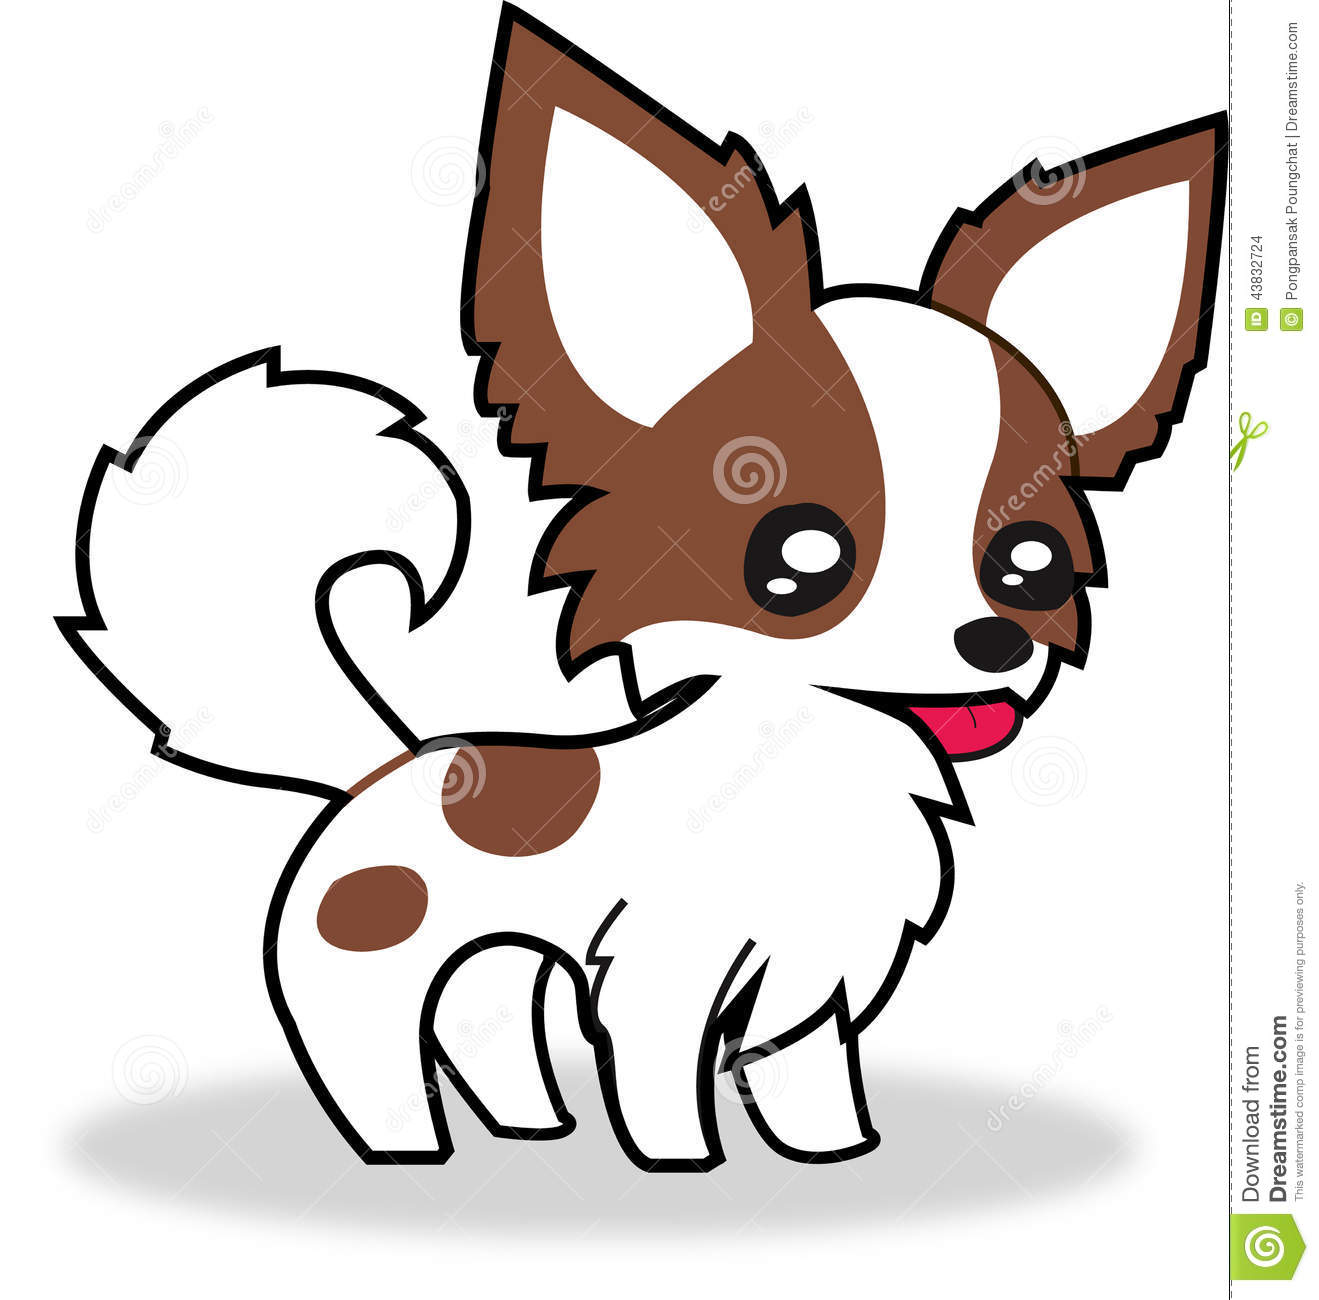 Cartoon Chihuahua Dog Clip Art Stock Photos, Images, & Pictures.